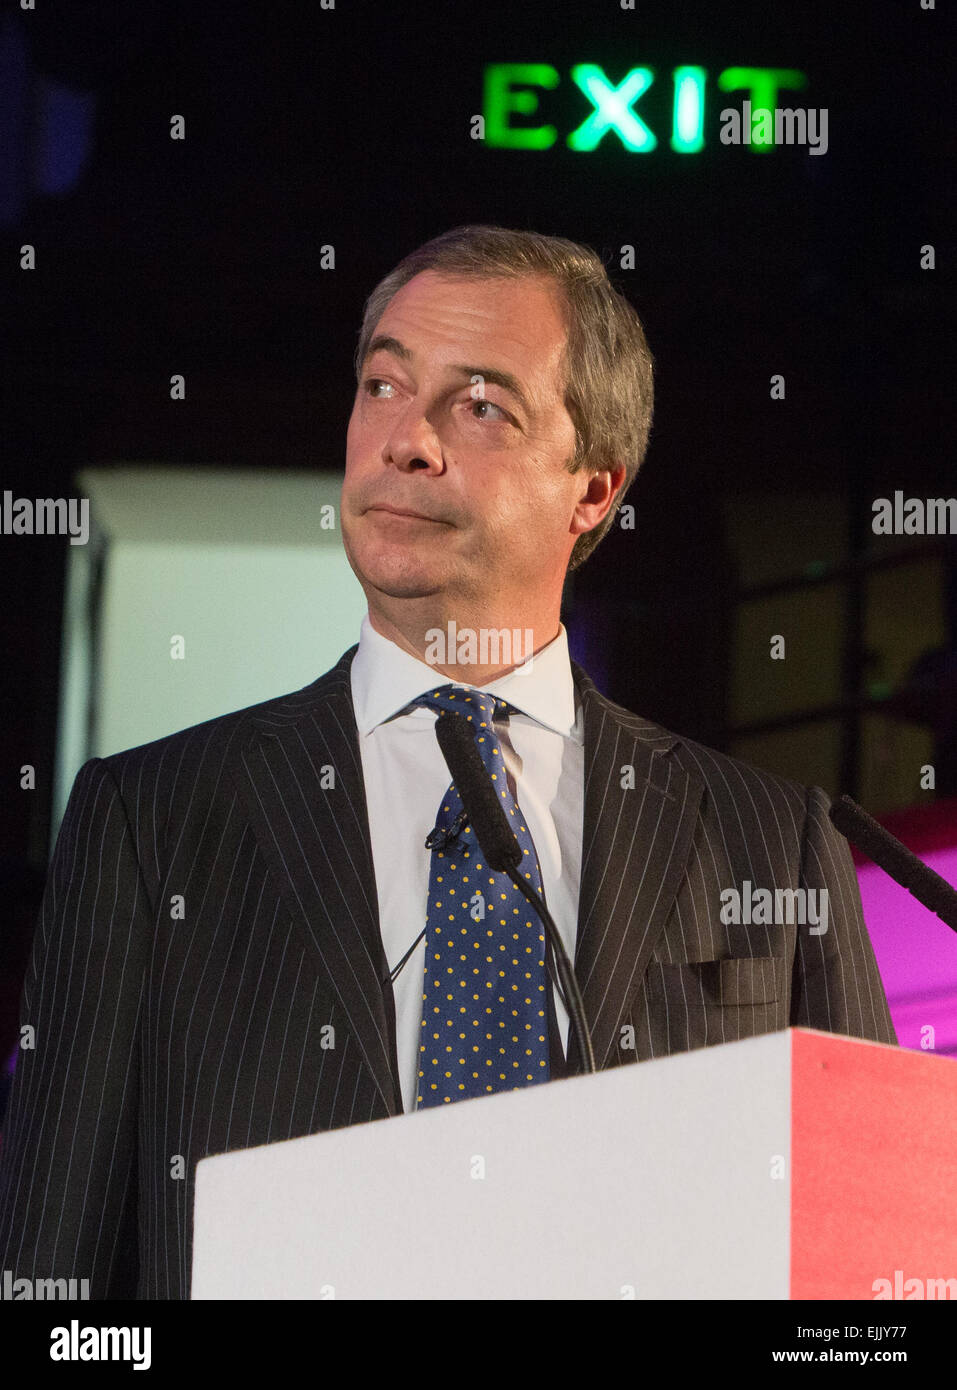 Nigel Farage,the UKIP leader,speaks at a conference at Westminster Central Hall about building new homes Stock Photo